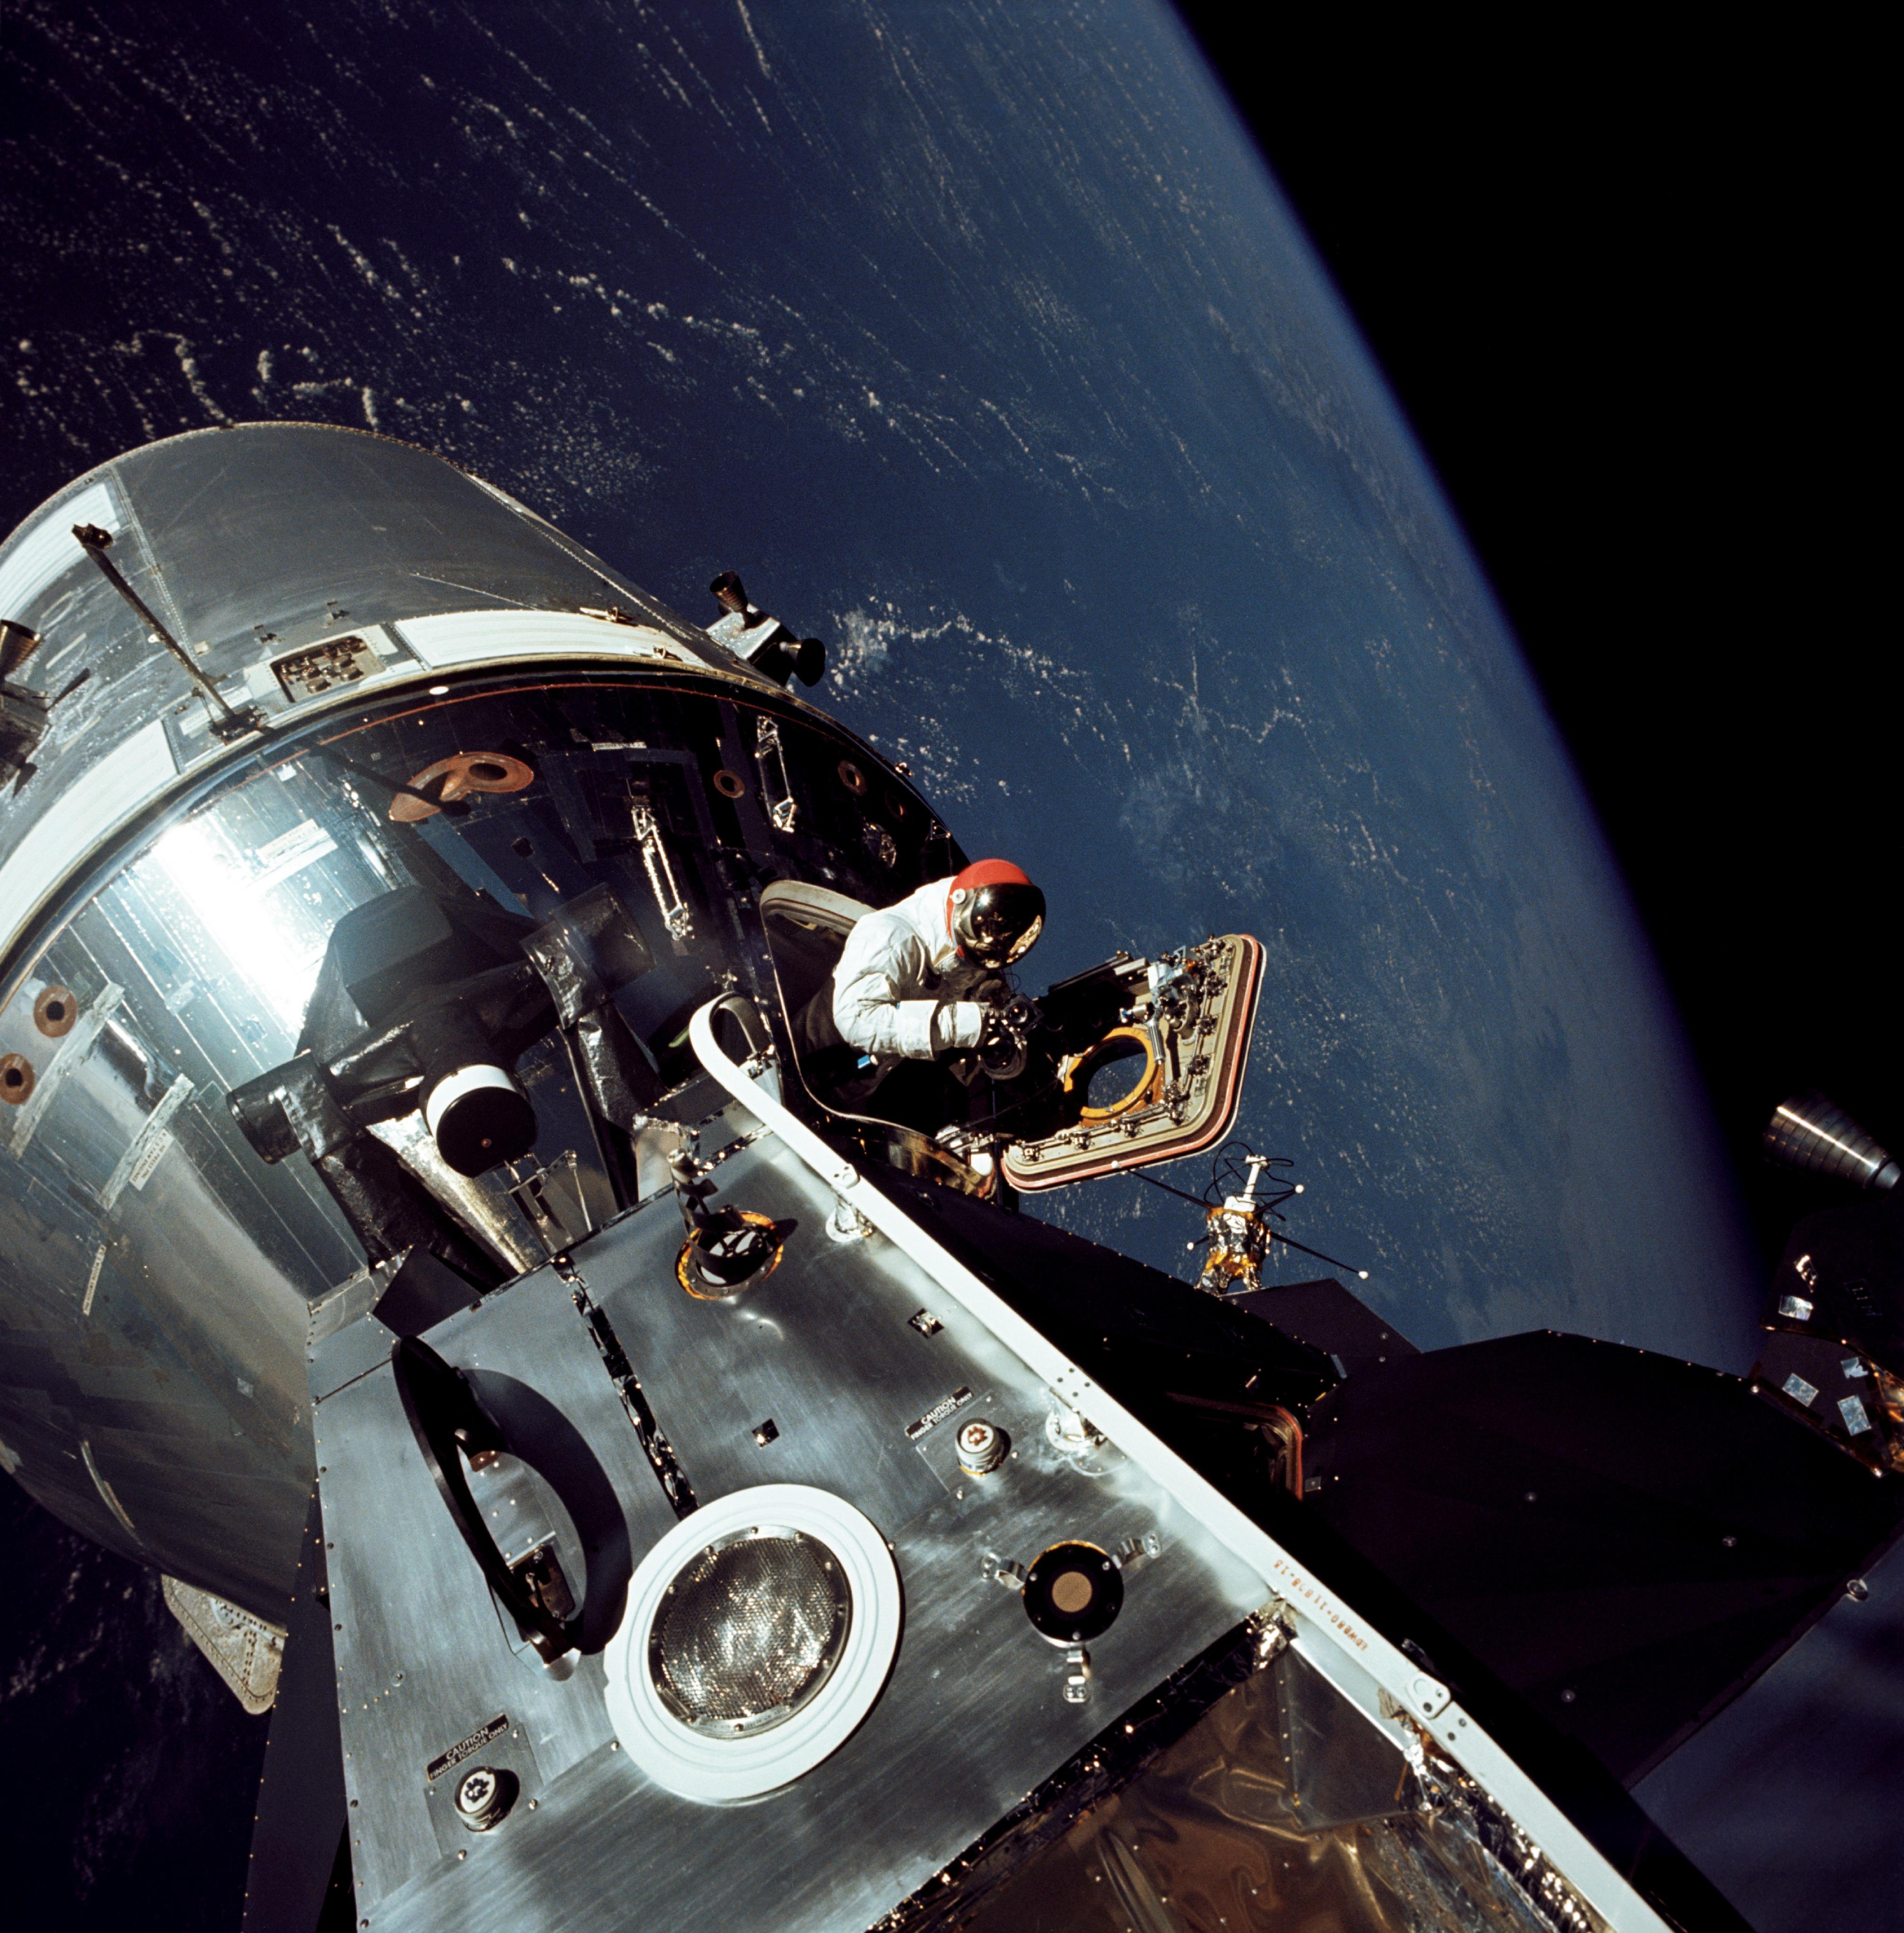 space apollo mission astronauts - photo #25